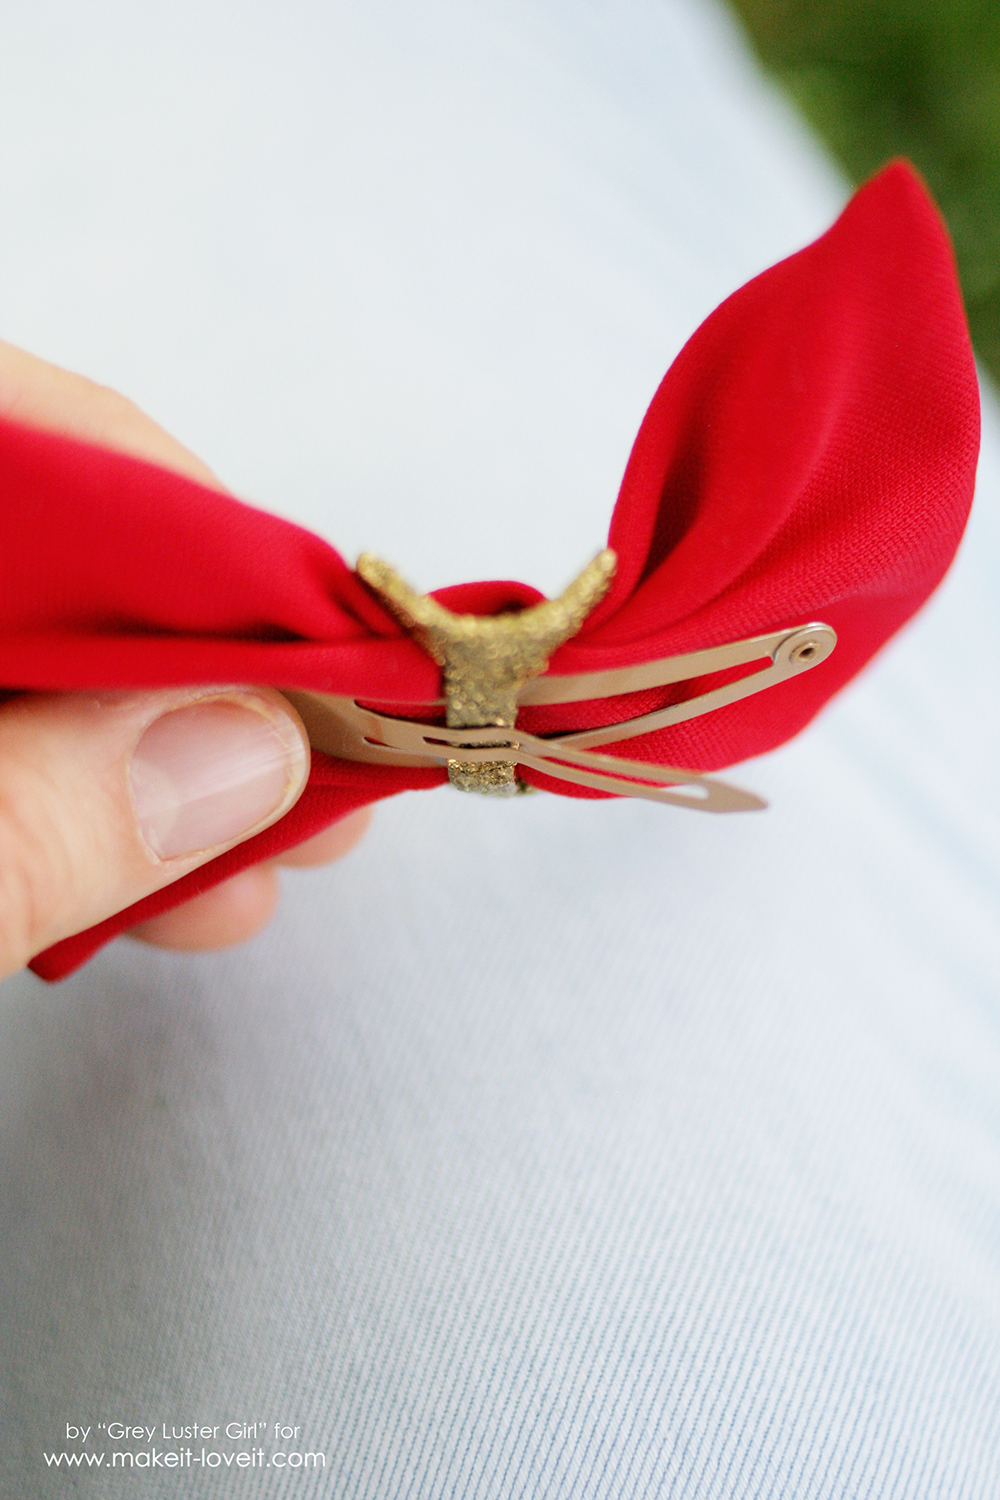 How to make an Easy Faux Metal Buckle Hair Bow | via www.makeit-loveit.com